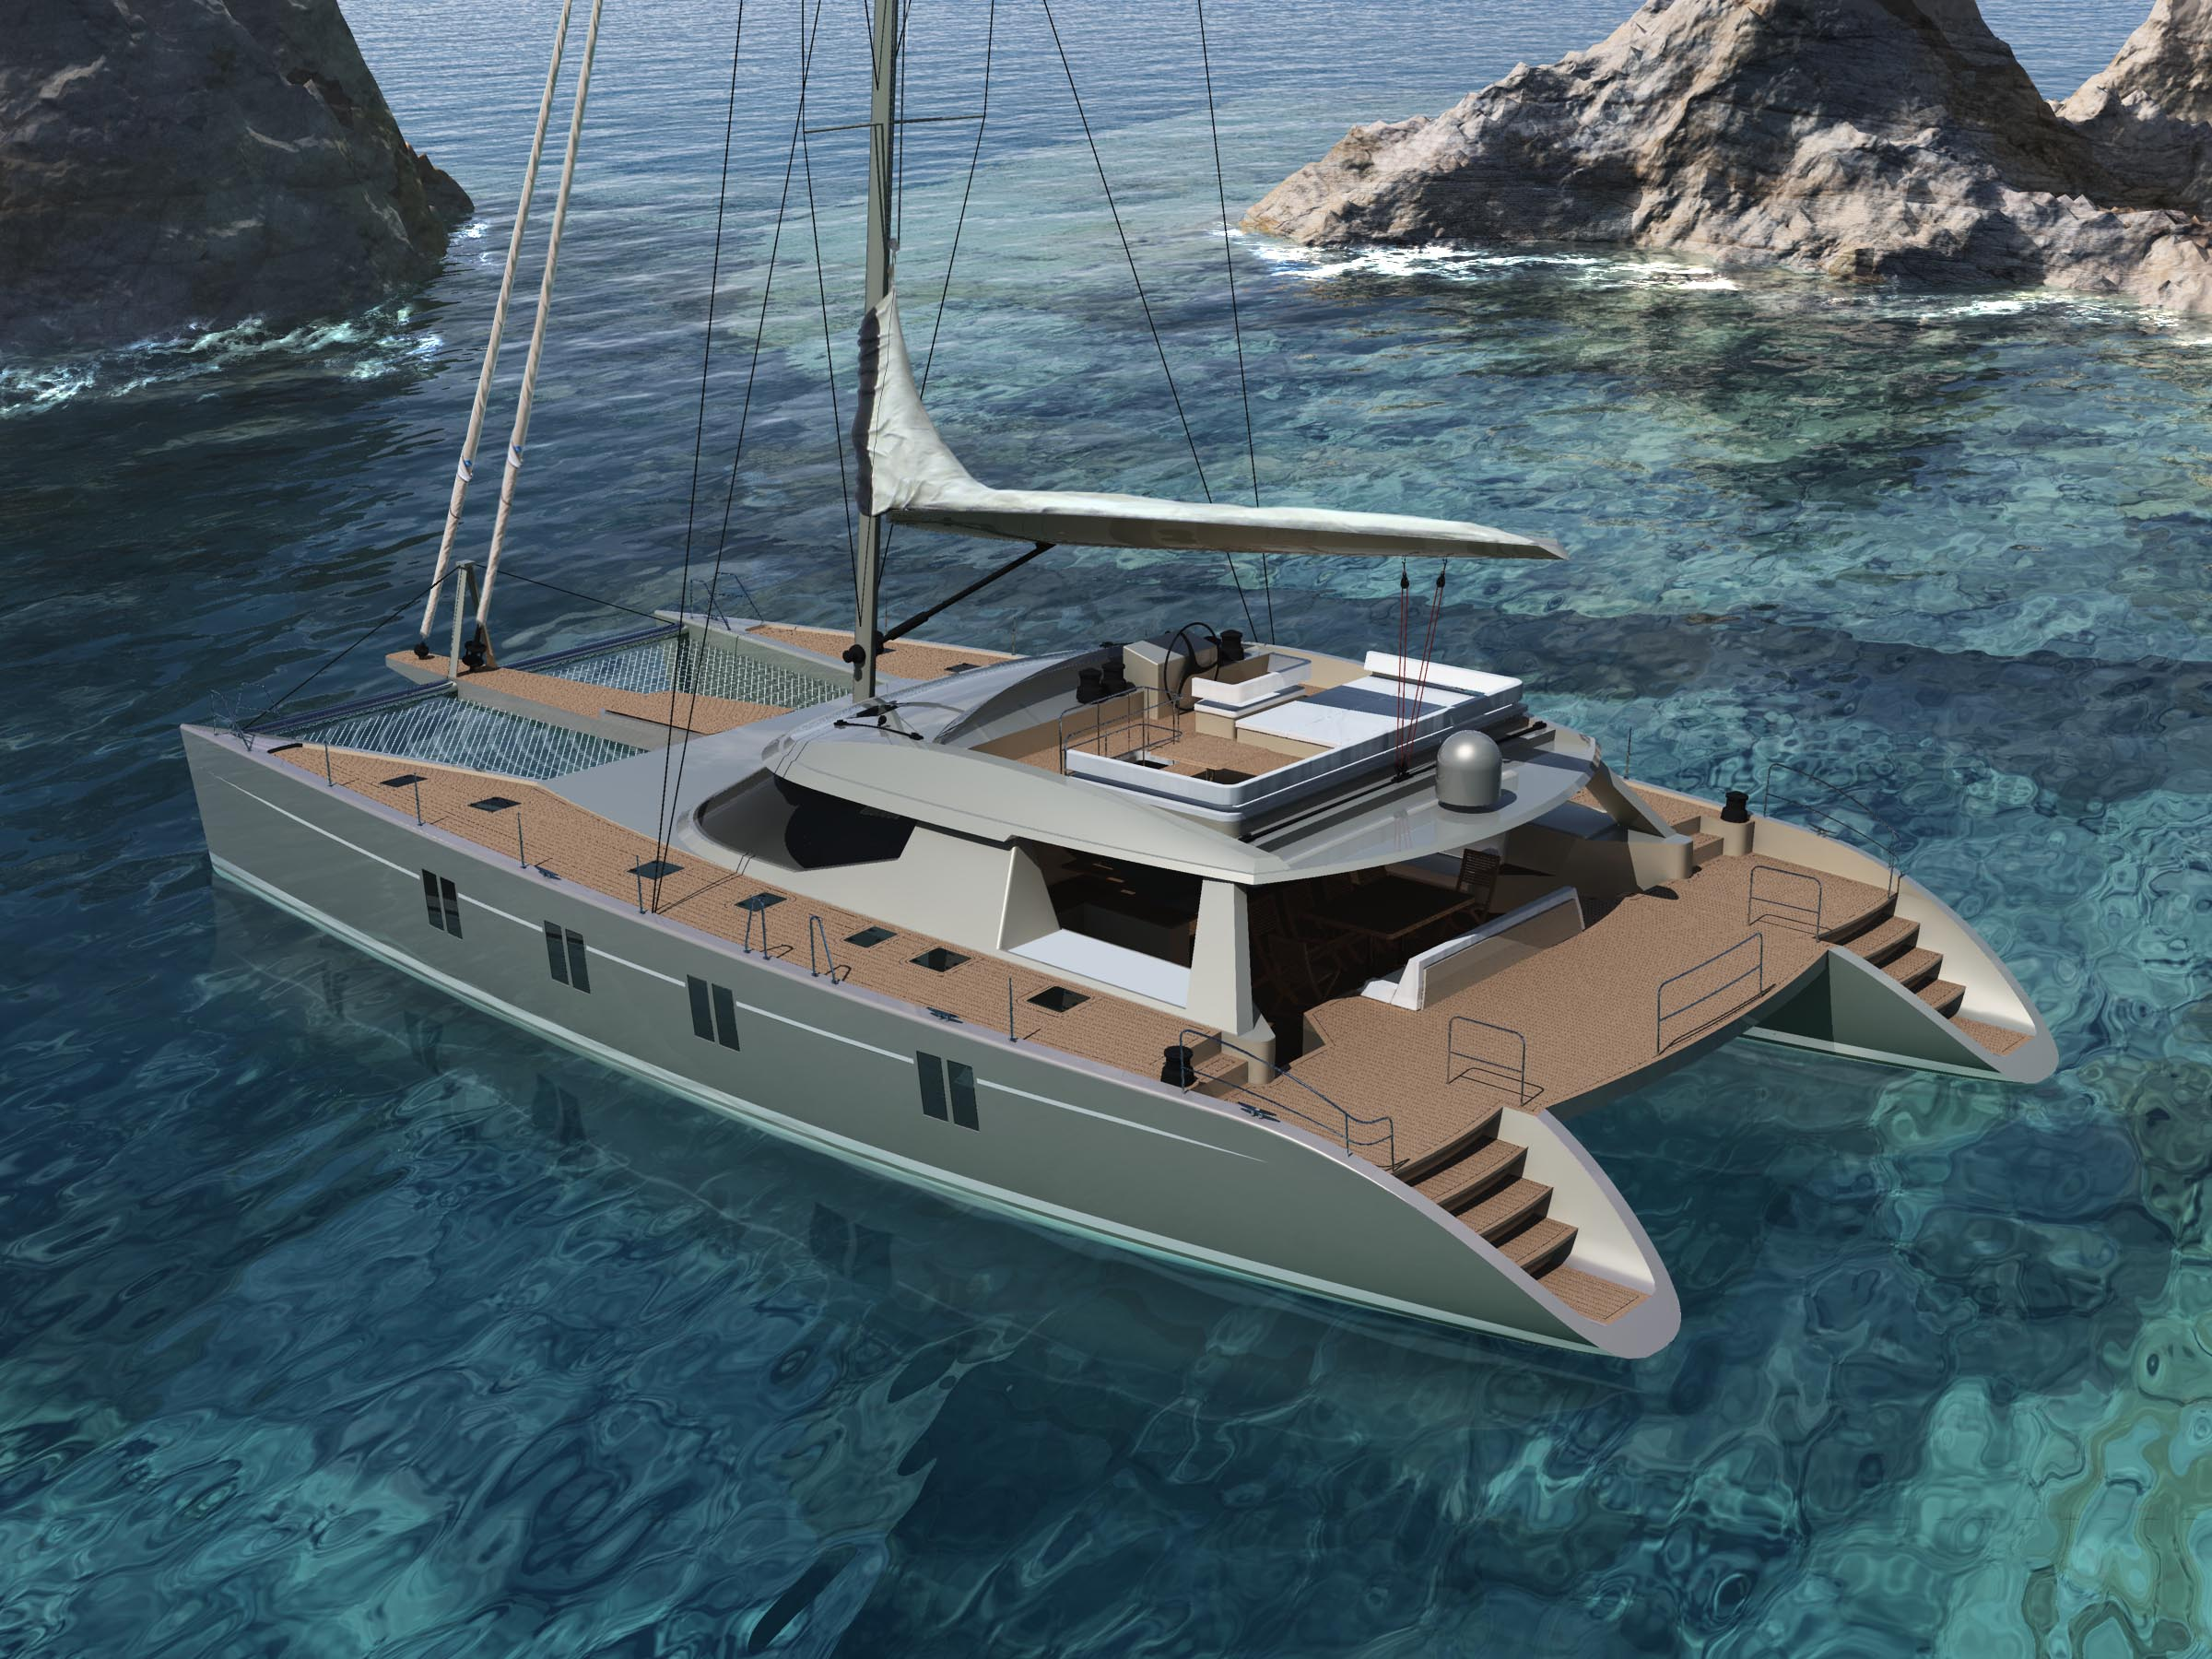 water boat toys with Havana72 Photo2 on 10 Superyacht Tender Garages Will Absolutely Blow Mind additionally Watch together with Hamleys Itb Packaging likewise Oceana Logo 3 besides The Viking 70 Ft Motor Yacht Profile.